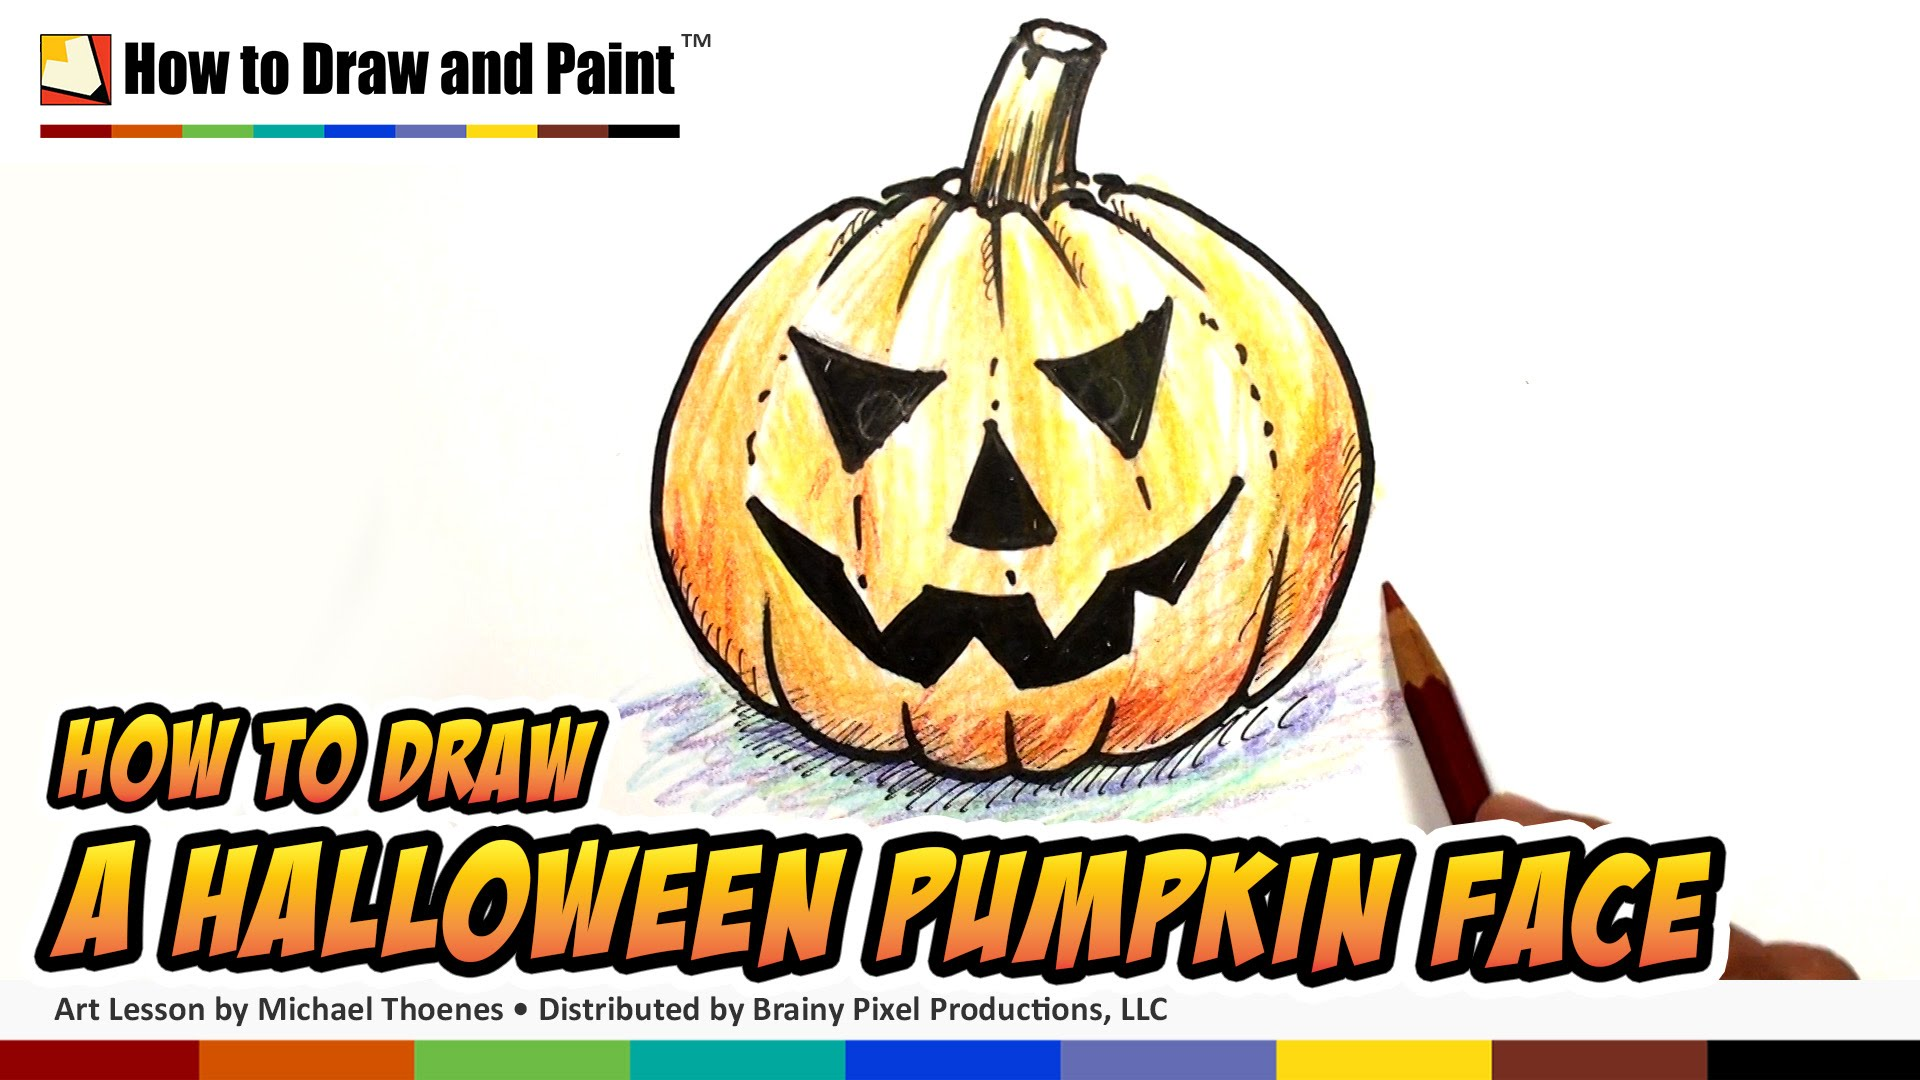 Drawn pumpkin halloween decoration To Face to for Kids